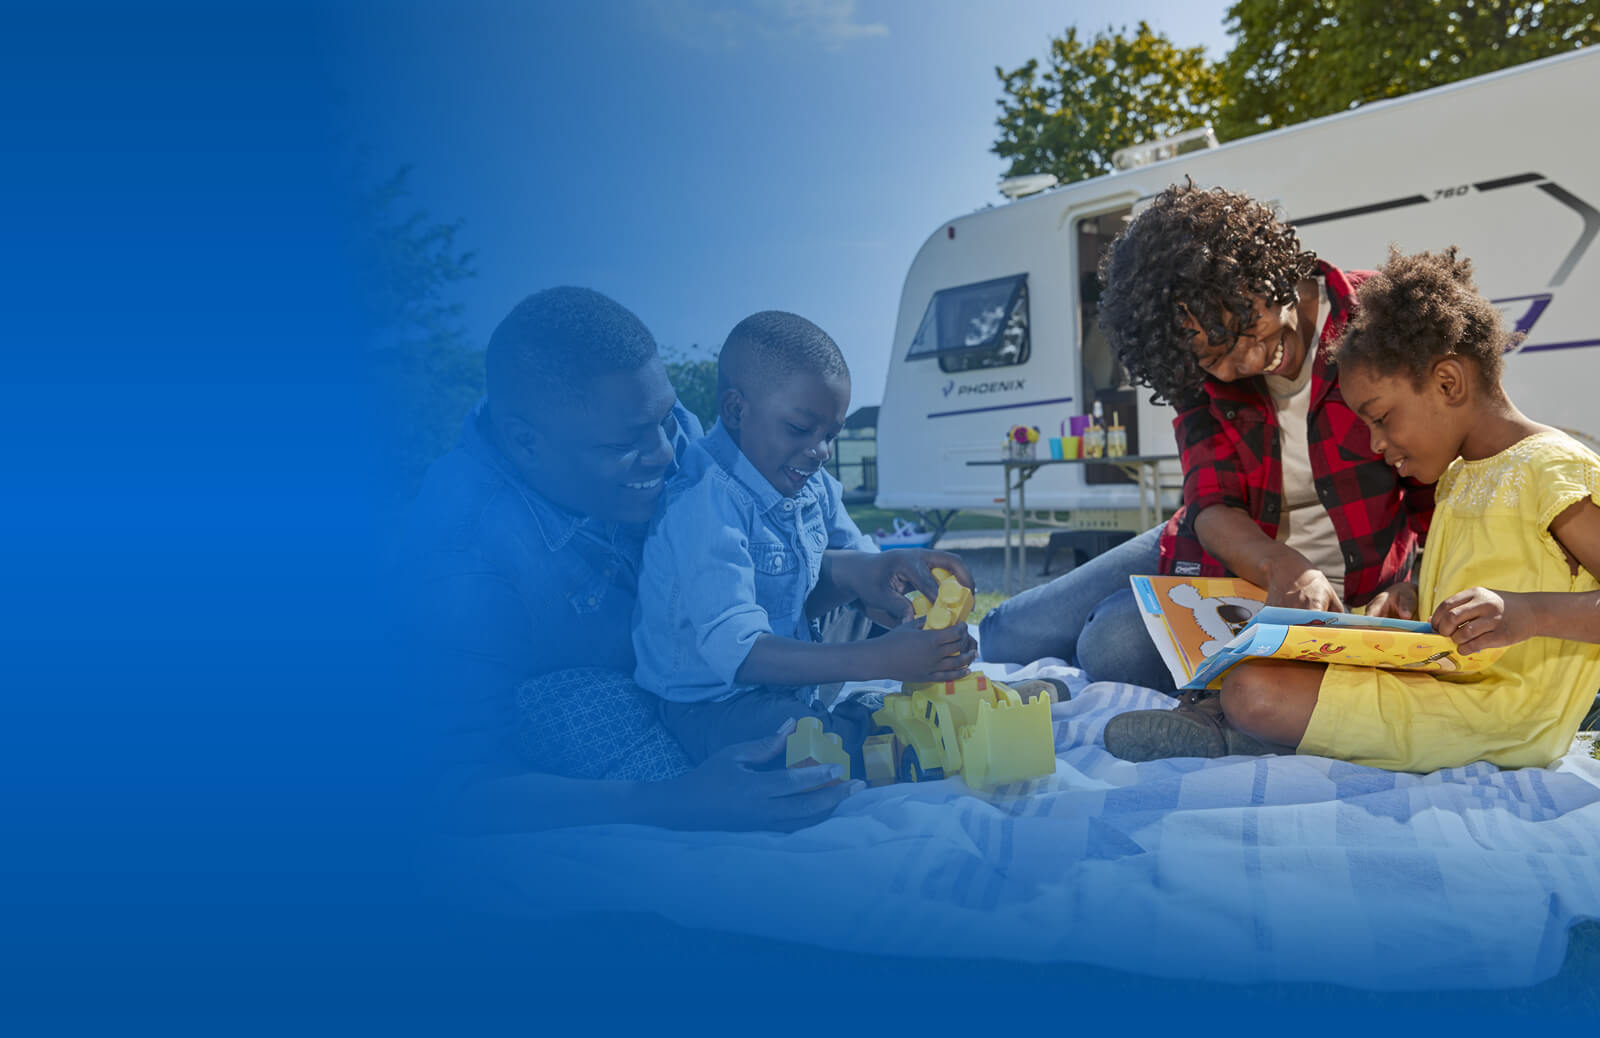 New Bailey caravans from Bailey of Bristol